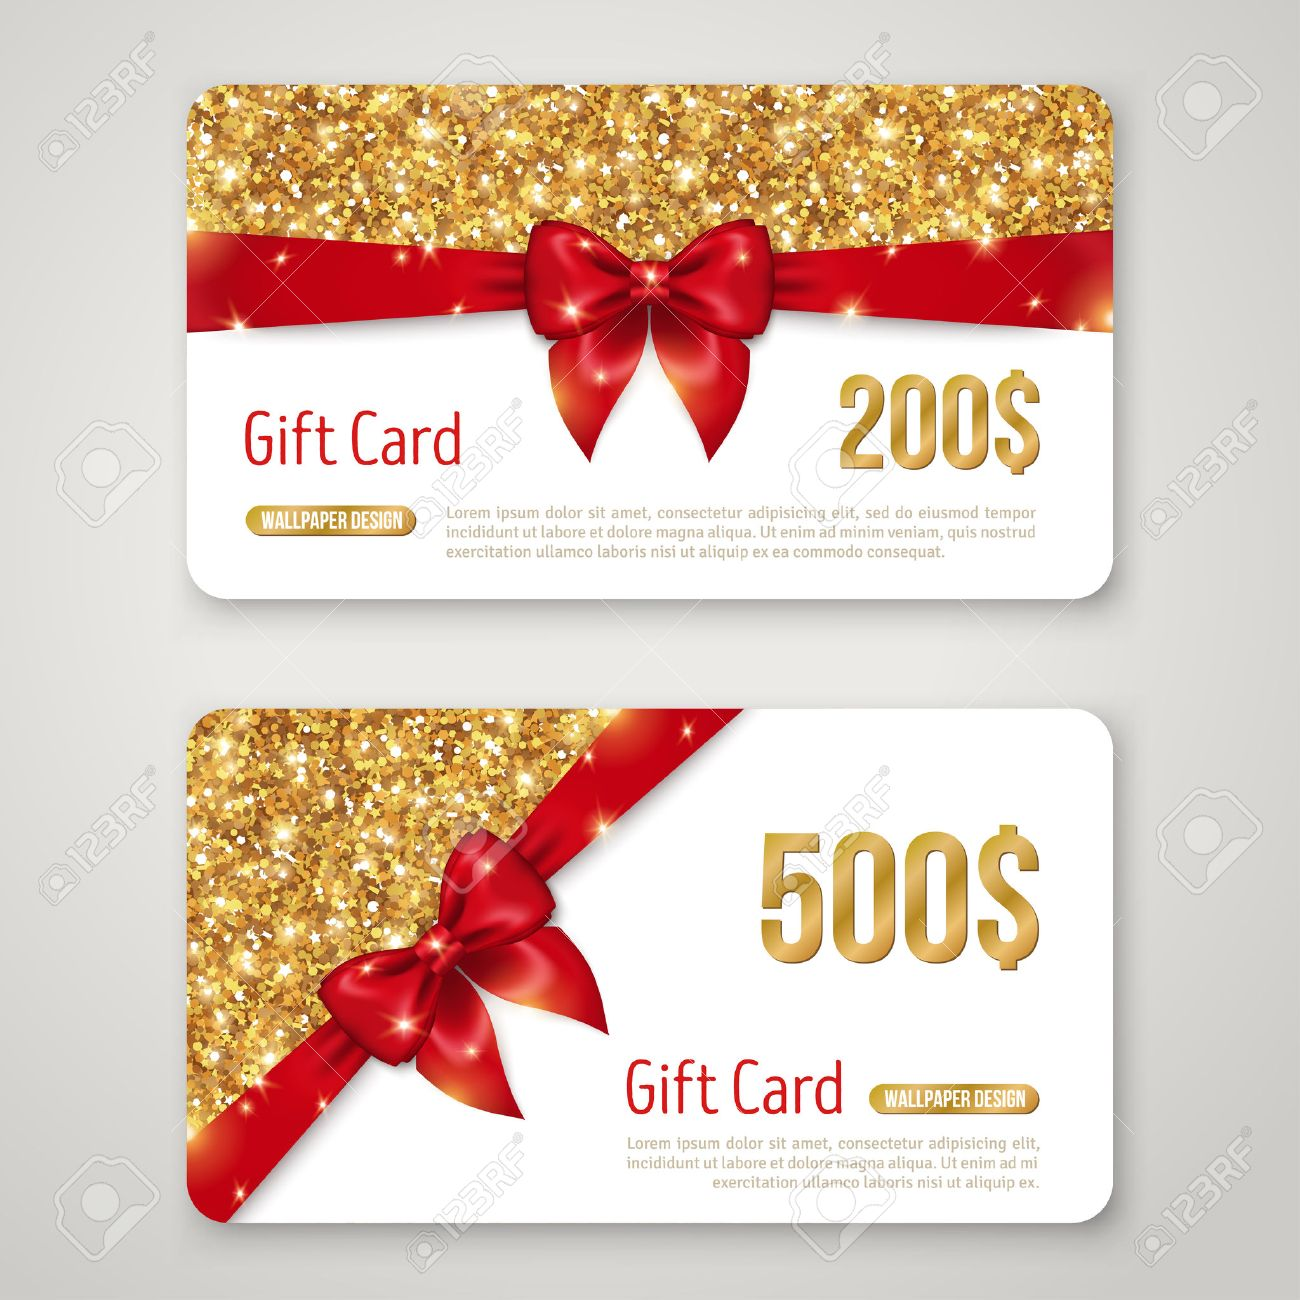 Gift Card Design With Gold Glitter Texture And Red Bow Invitation